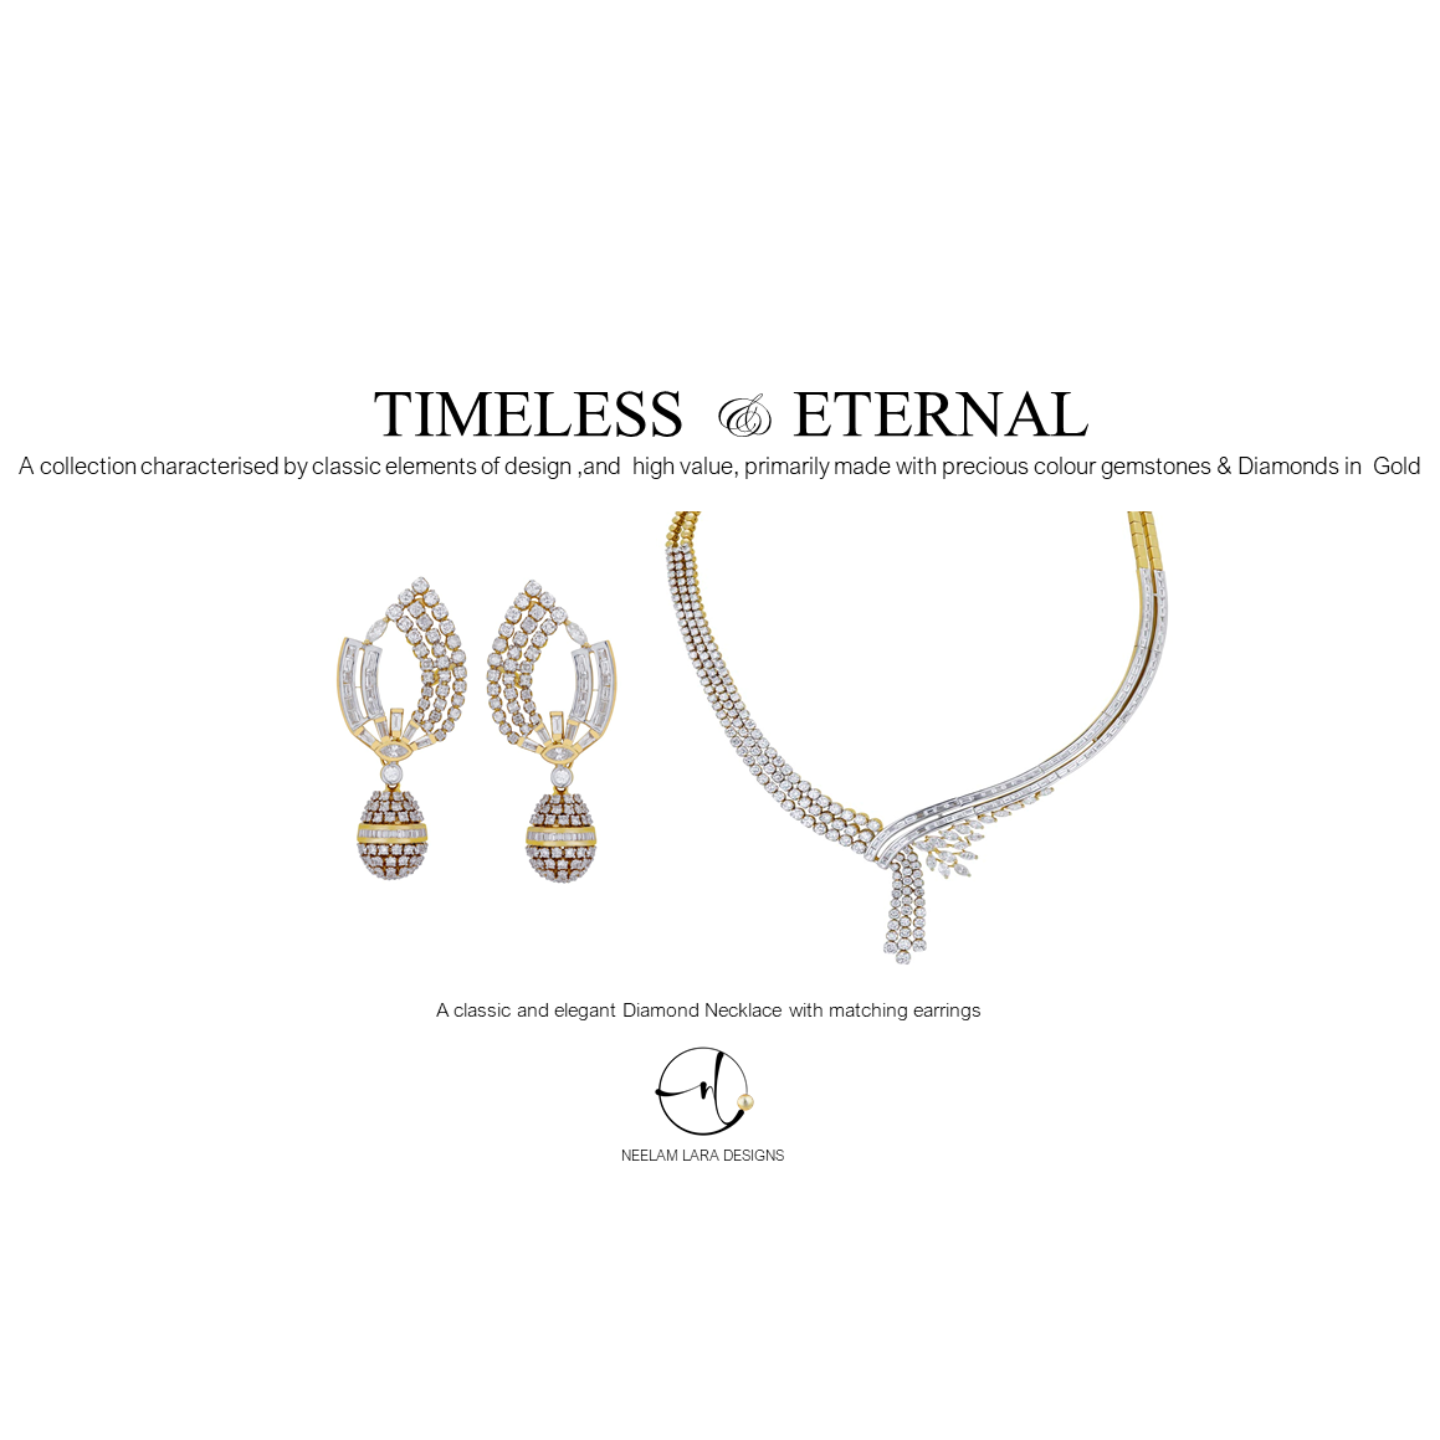 Elegant Diamond Necklace and Earrings